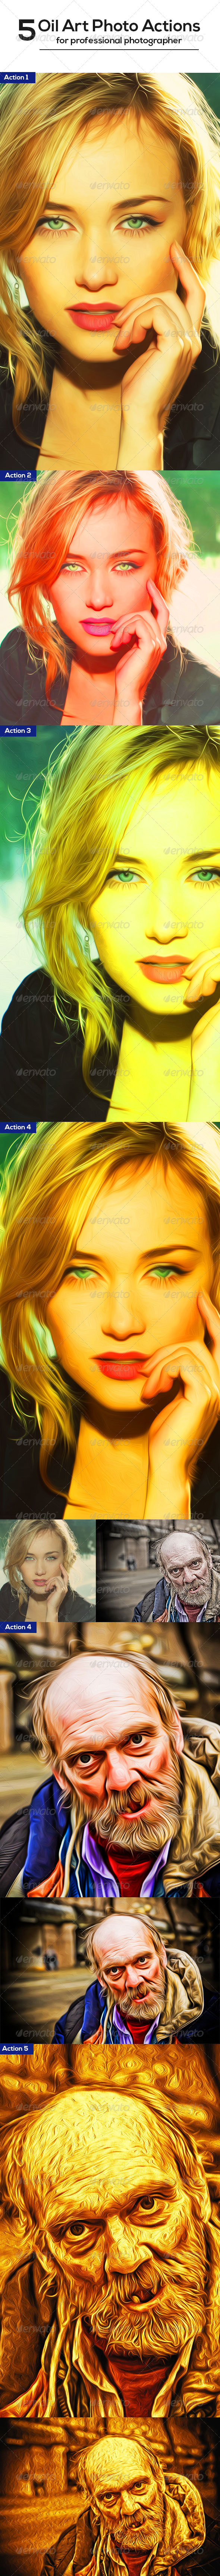 GraphicRiver Oil Art Photo Actions 8241973